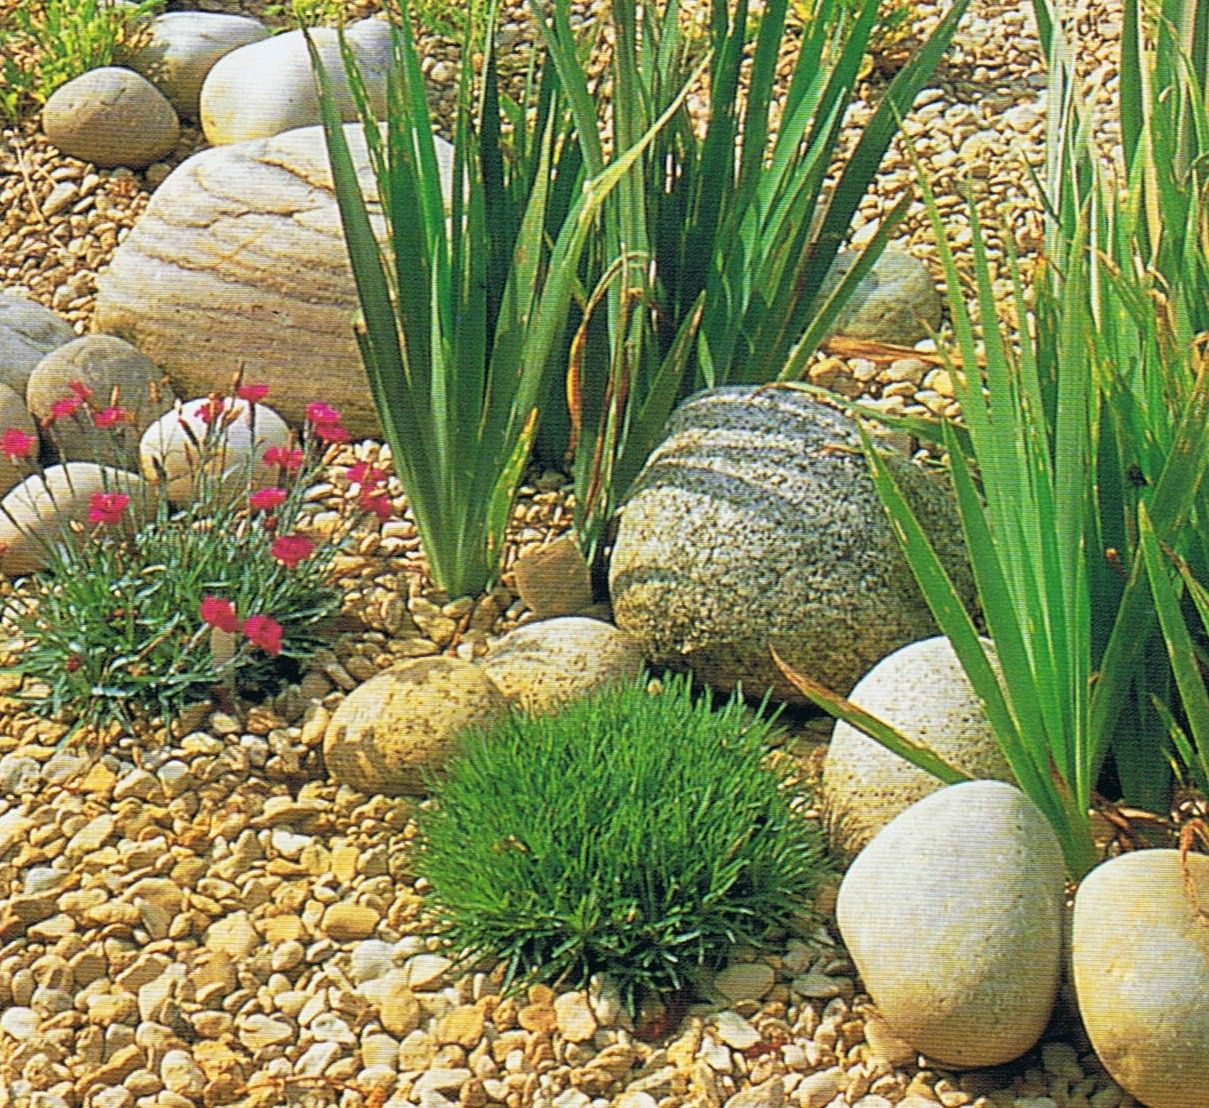 Nice Use And Placement Of Medium And Small 'pebble' Type Stones In